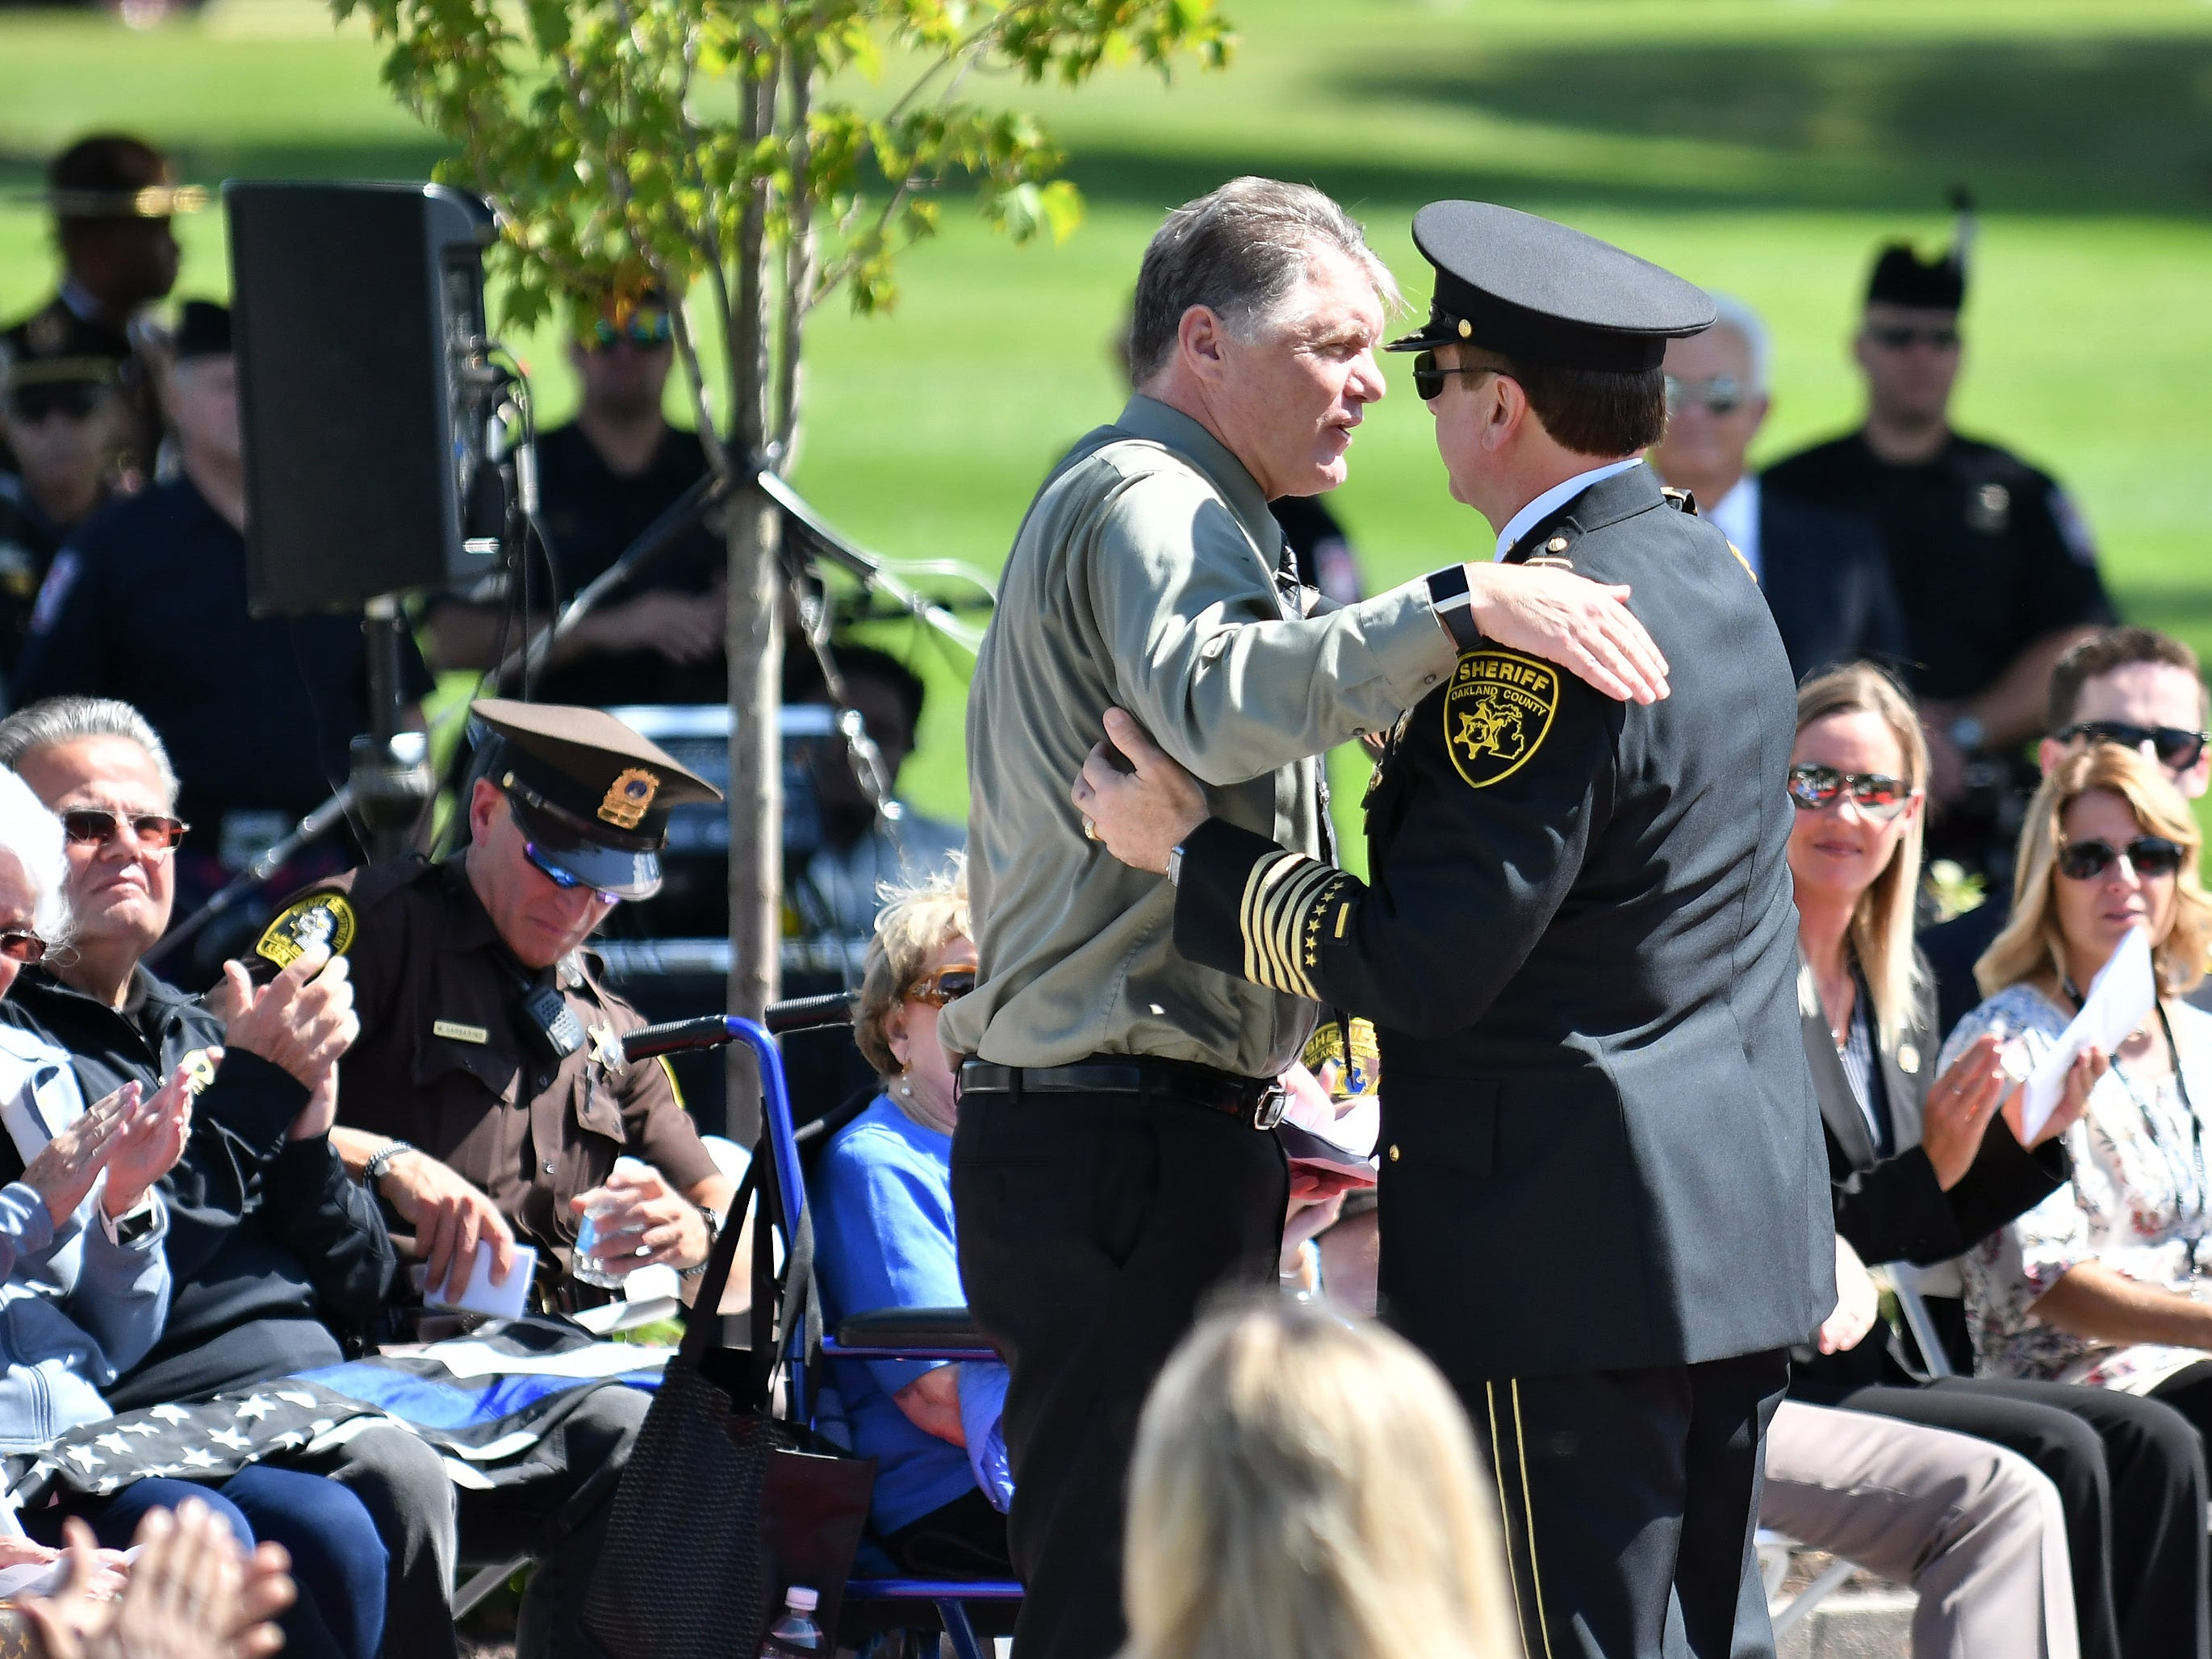 Oakland County Sheriff Michael Bouchard, right, hugs Deputy David Hack, who injured in the line of duty this year.